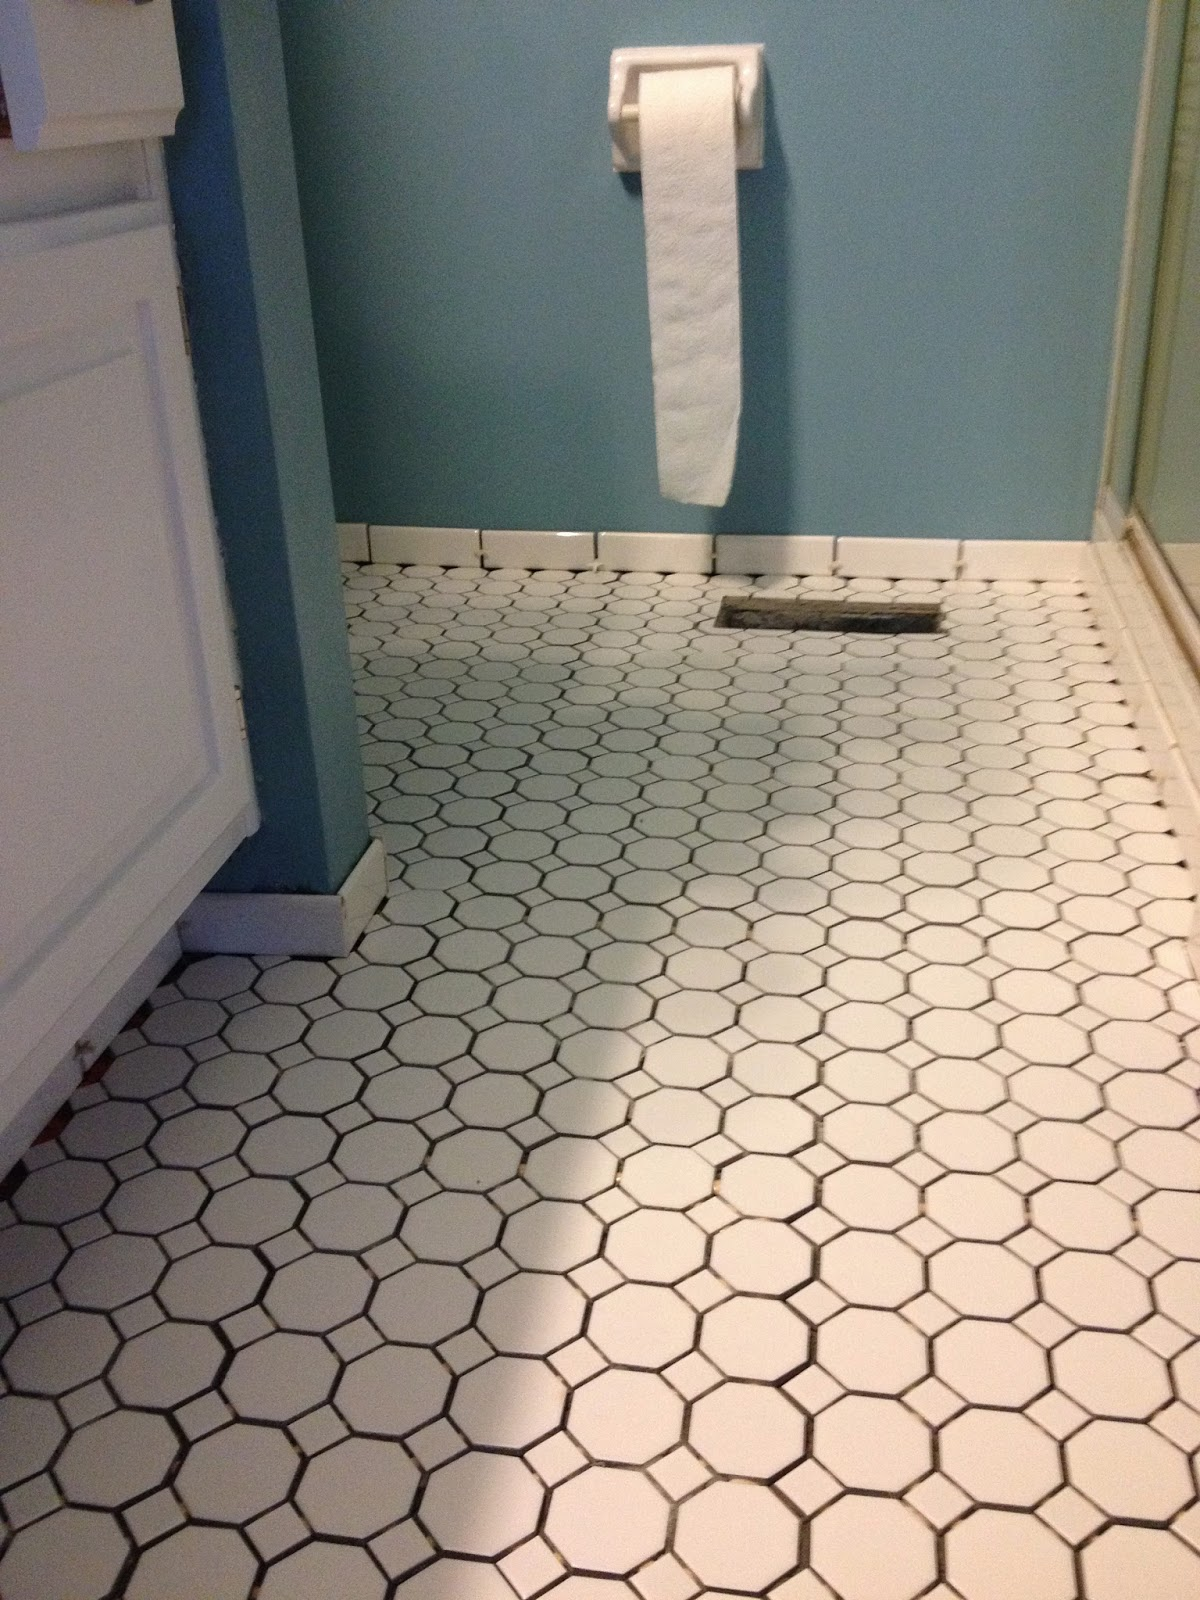 Oh what a gem small bathroom redone in a big way in case youre wondering i got this tile at lowes its american olean sausalito white ceramic tile on the floor and american olean starting line white dailygadgetfo Choice Image